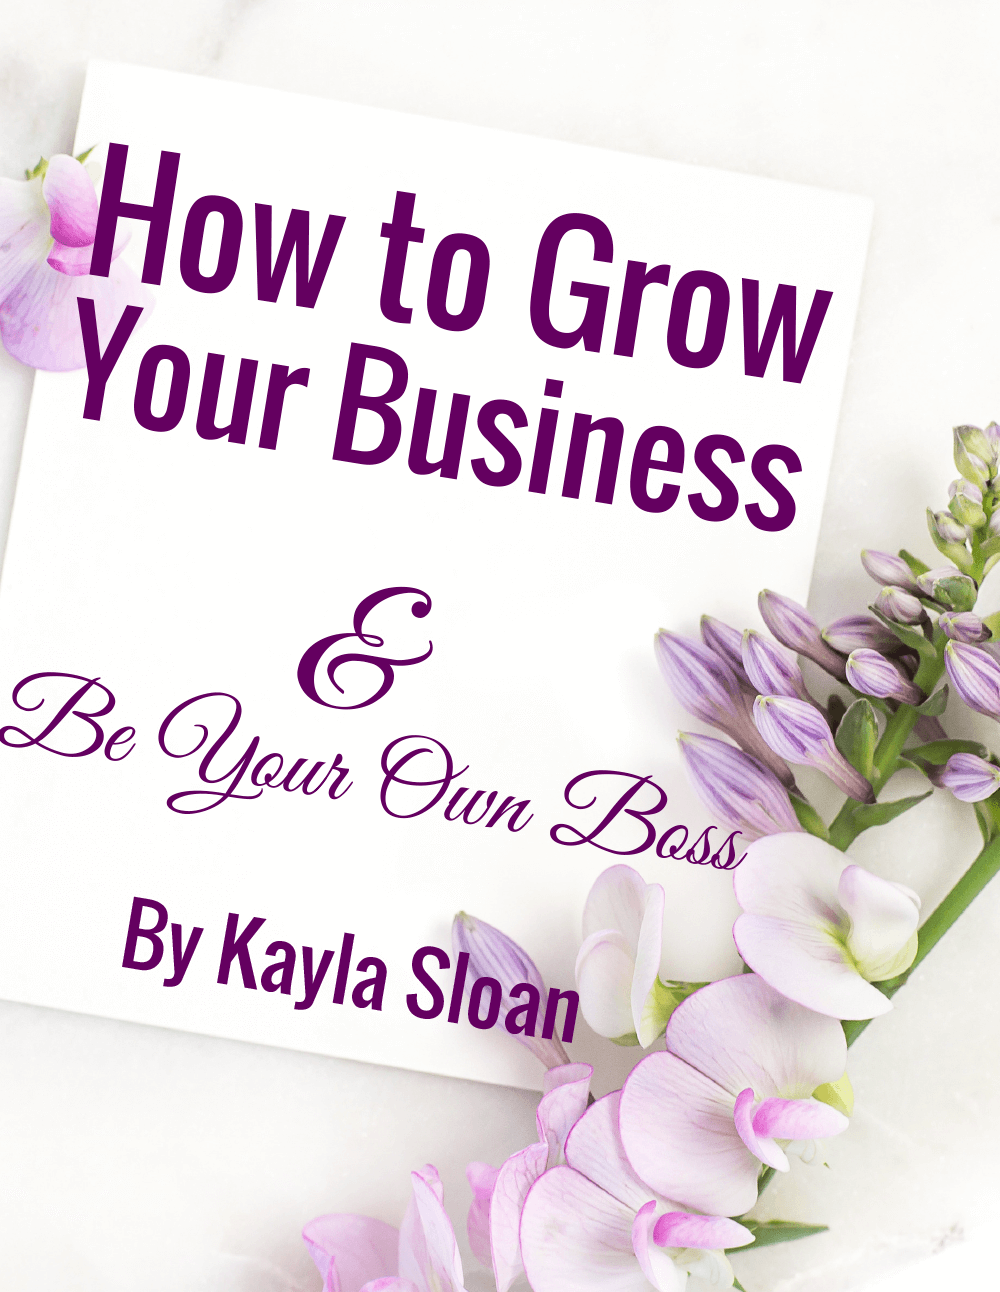 How-to-Grow-Your-Business-and-Be-the-Boss-by-Kayla-Sloan-1